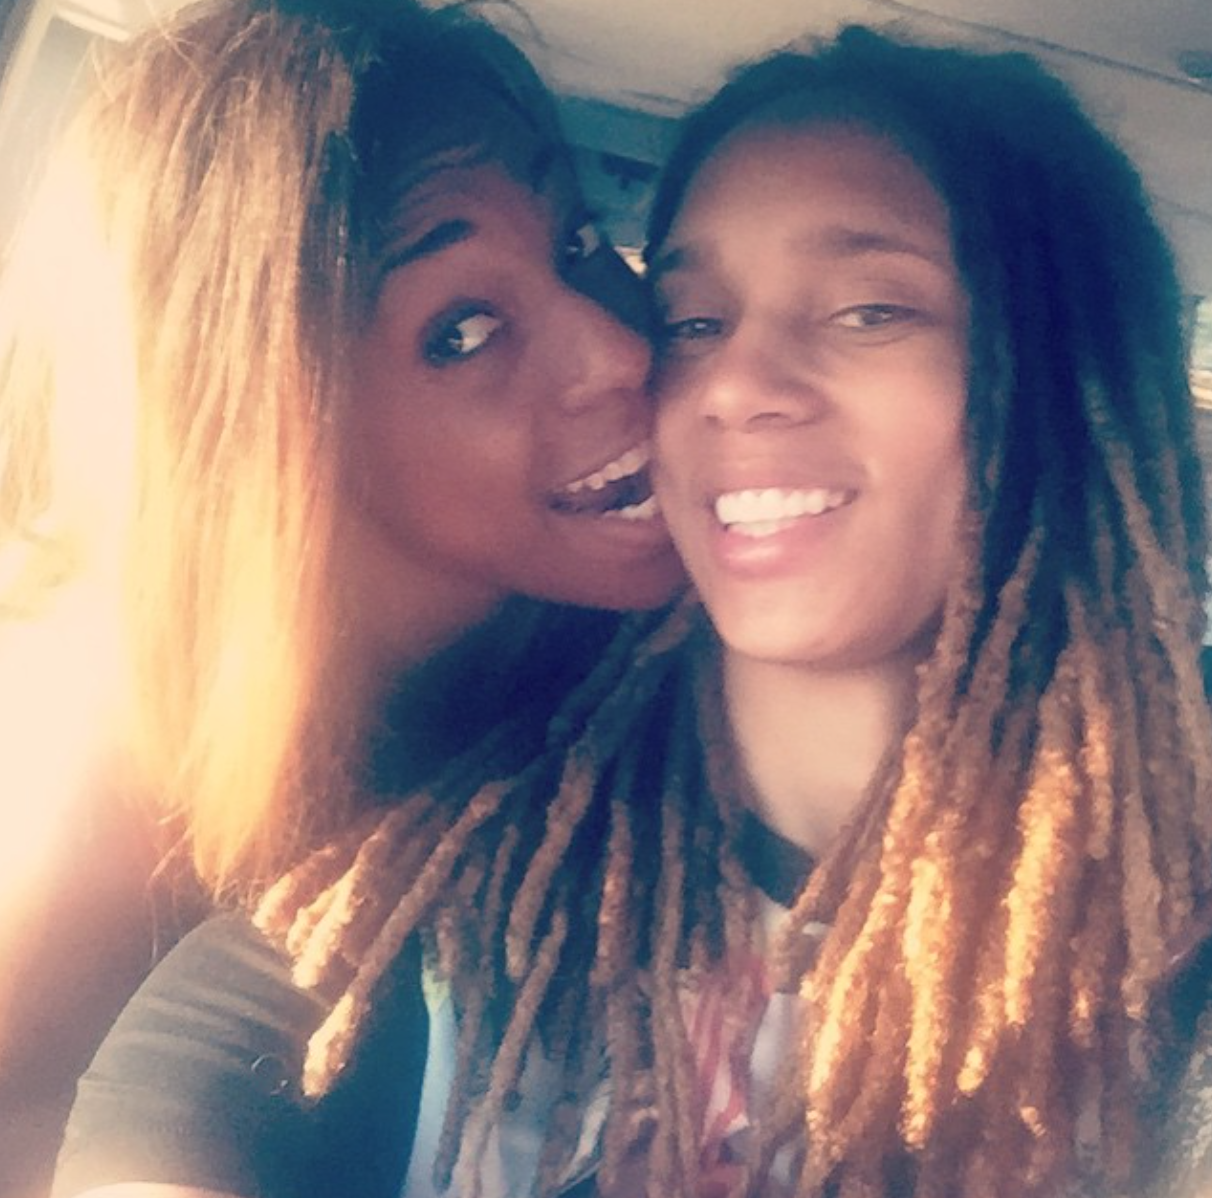 glory johnson breaks her silence on the incident fiance glory johnson breaks her silence on the incident fiance brittney griner